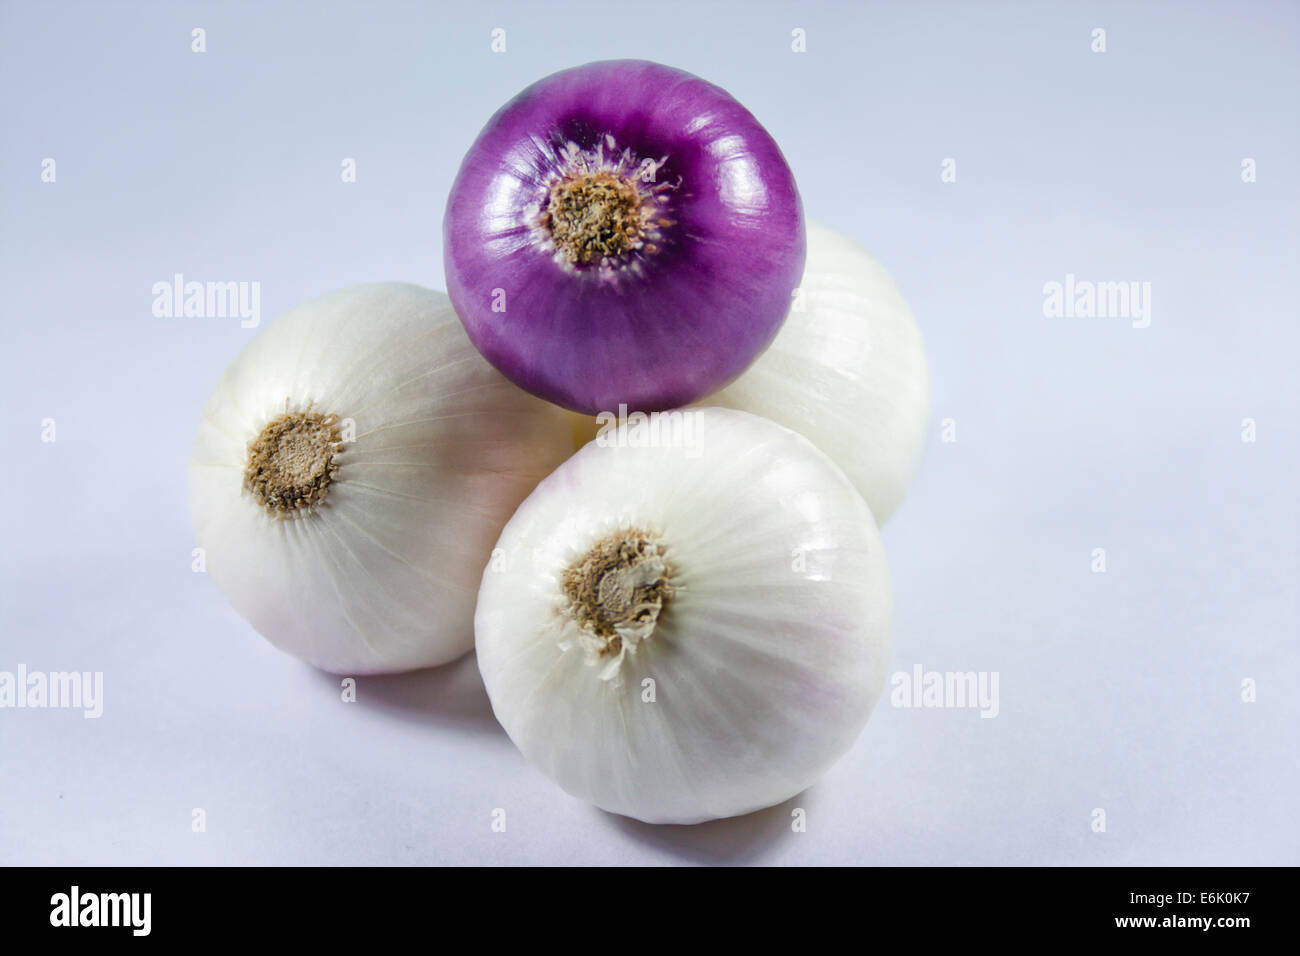 Fore onions on a white background. - Stock Image